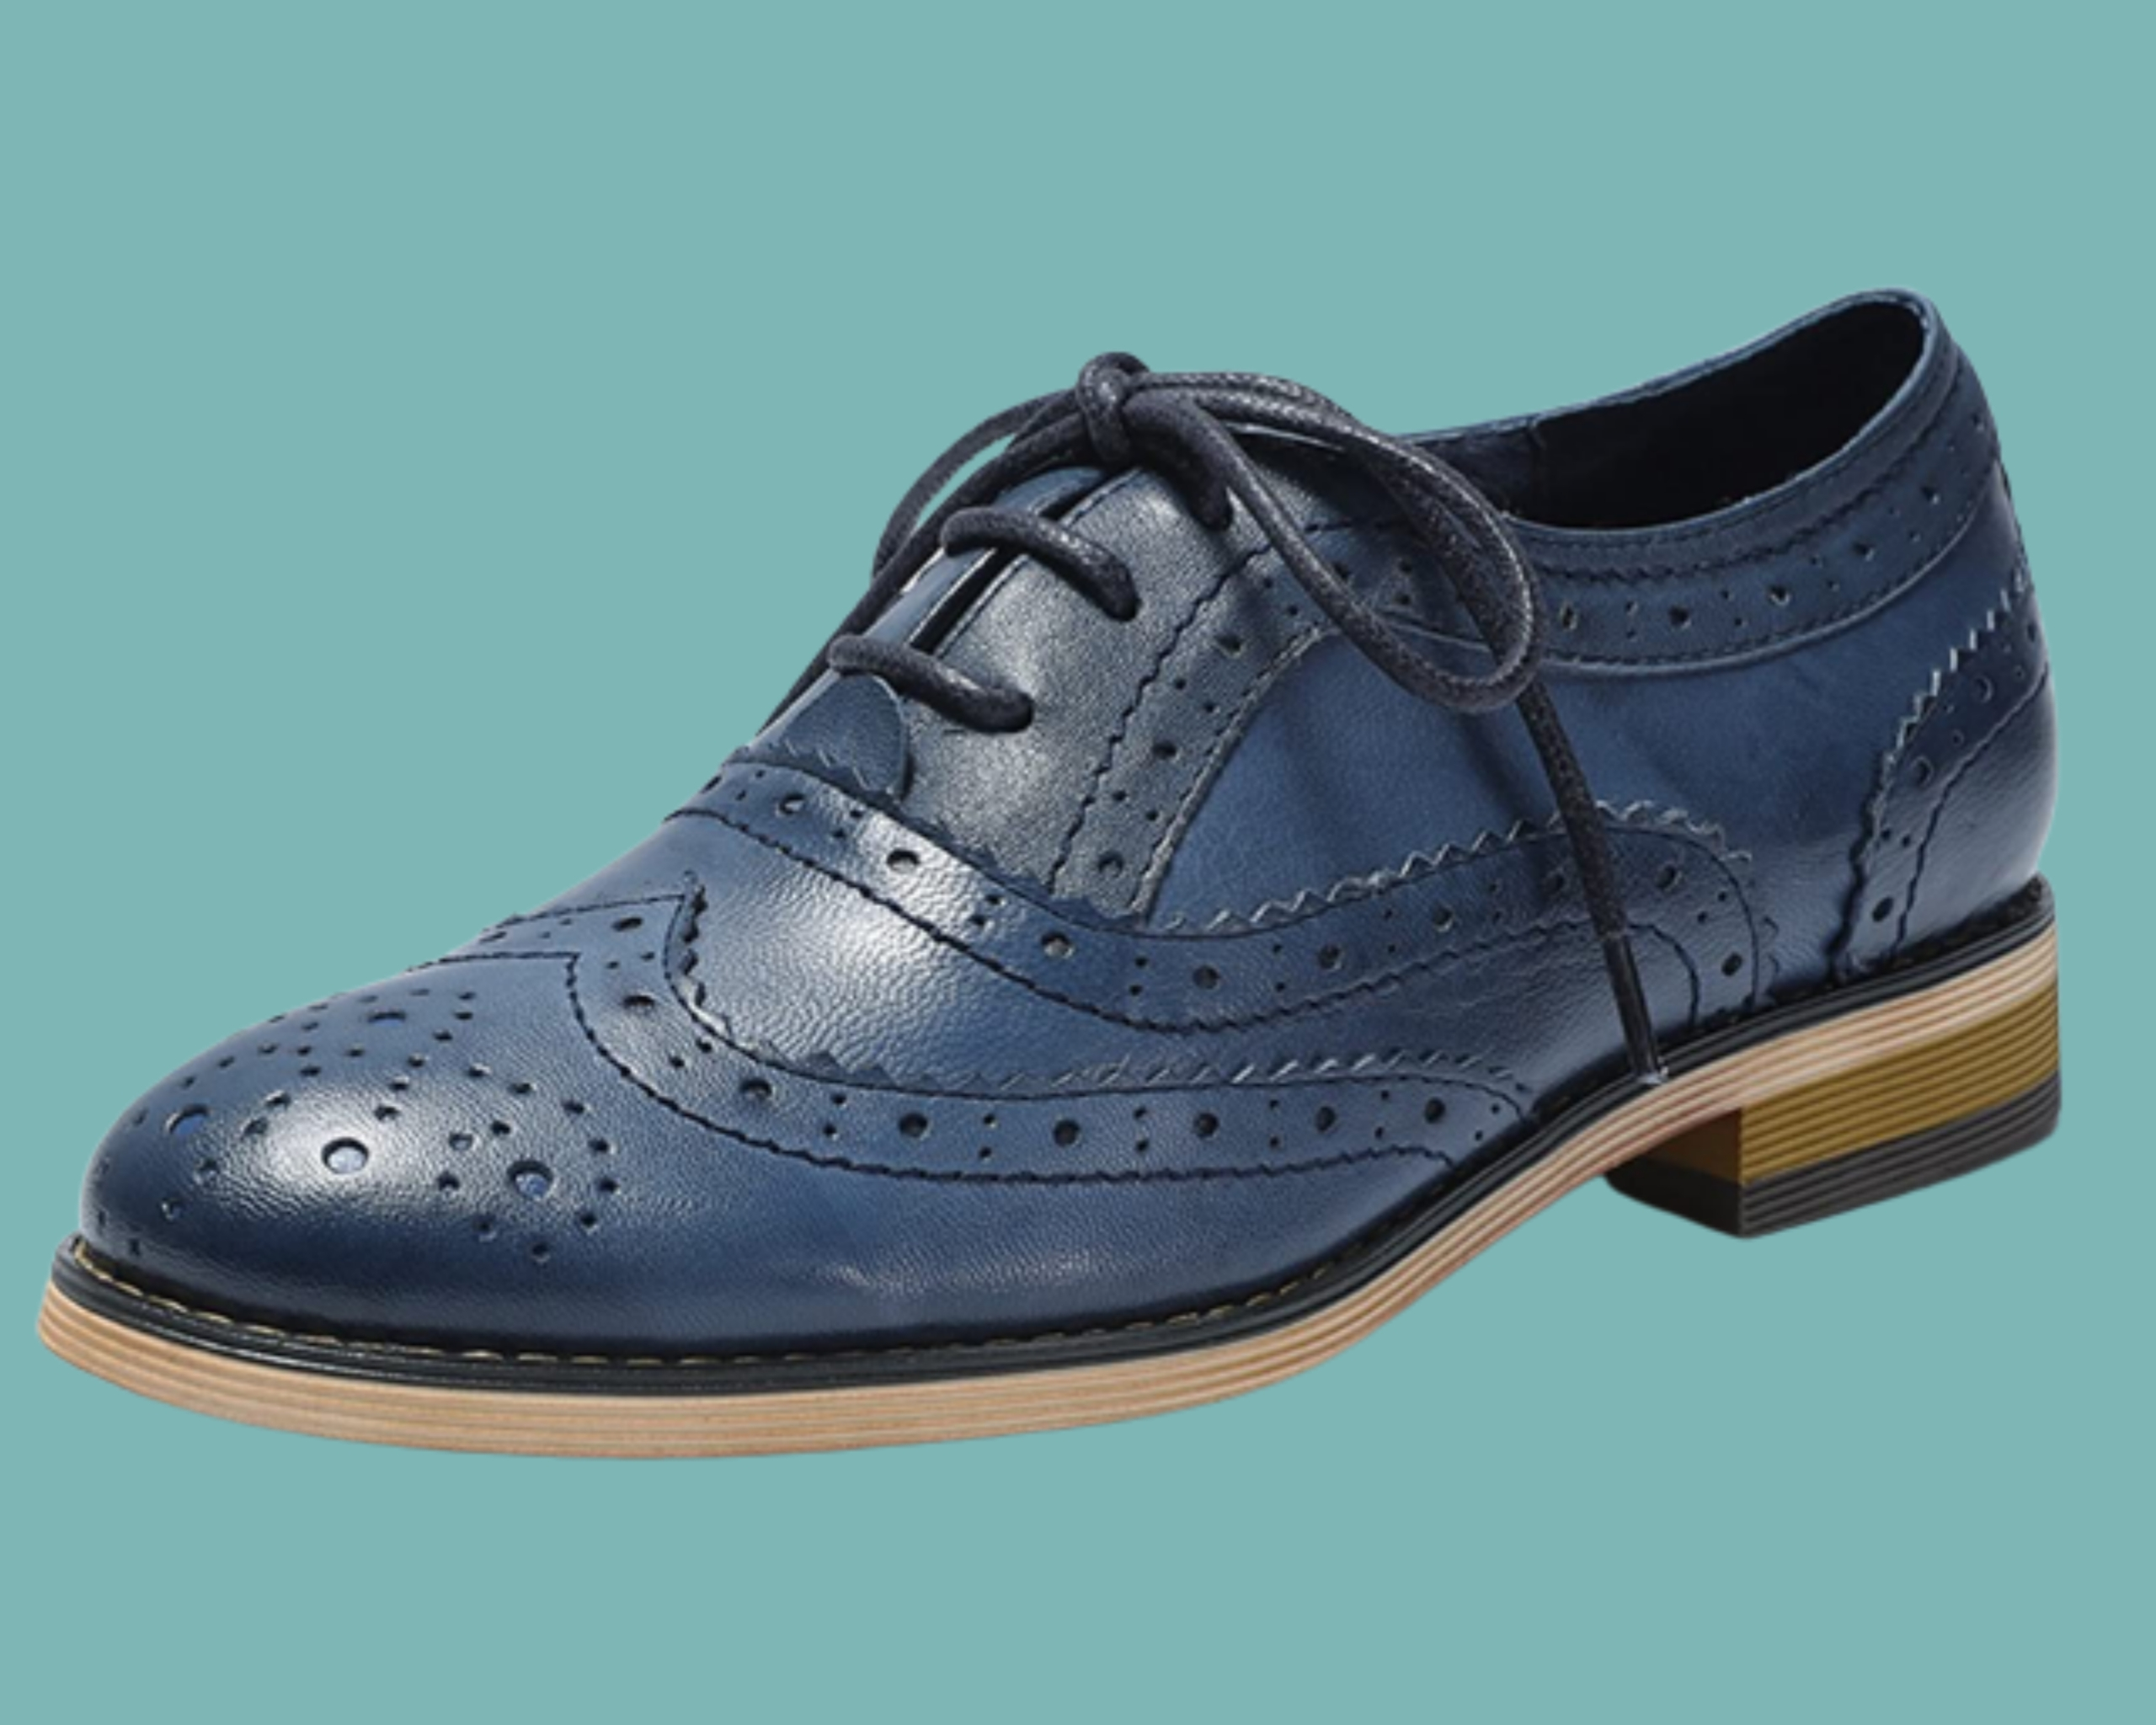 Nice Oxford shoe best for women